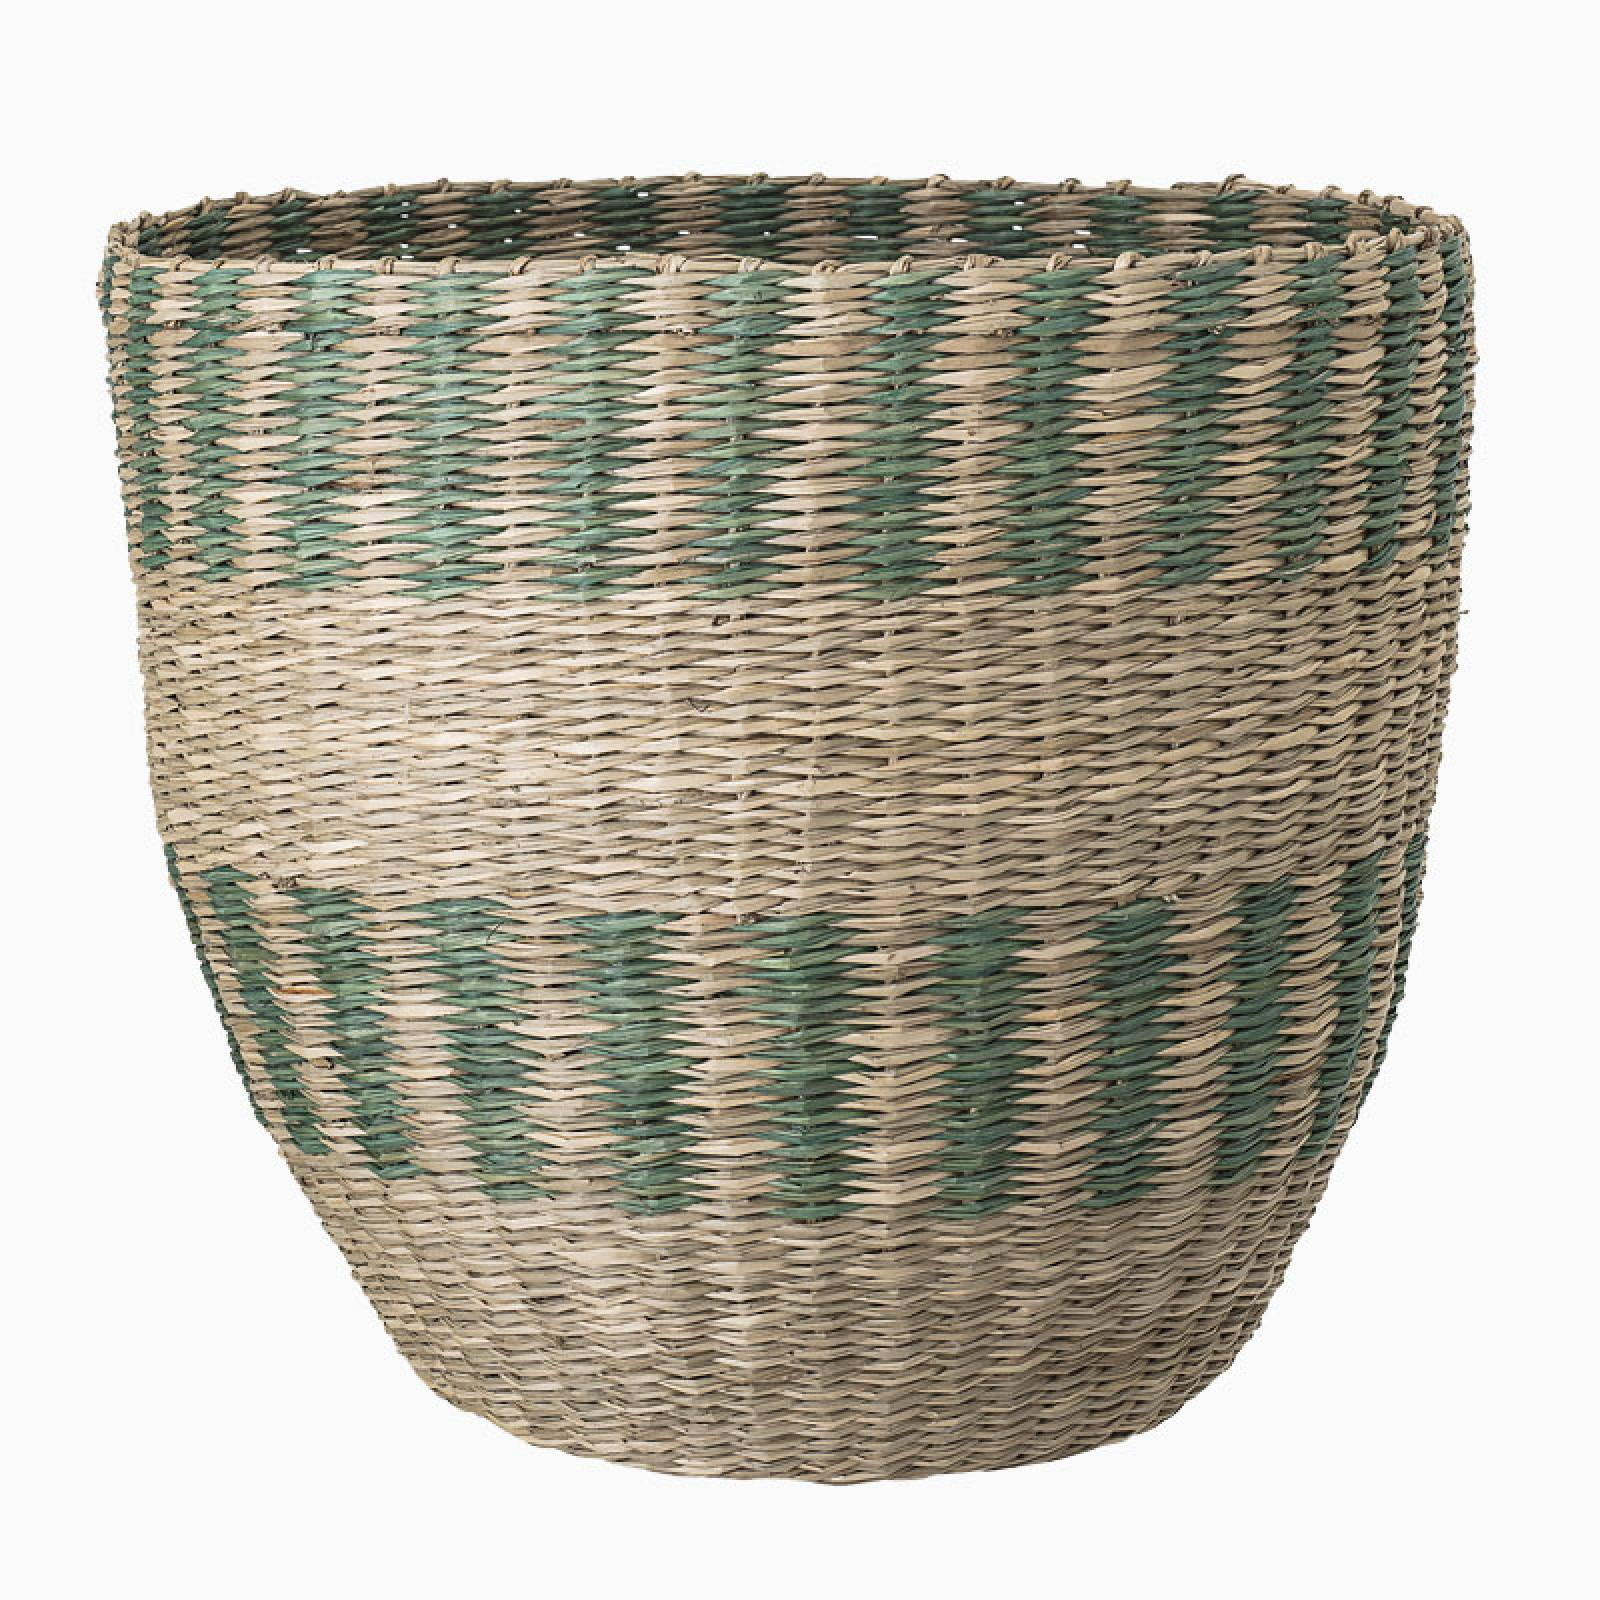 Green And Natural Striped Seagrass Basket